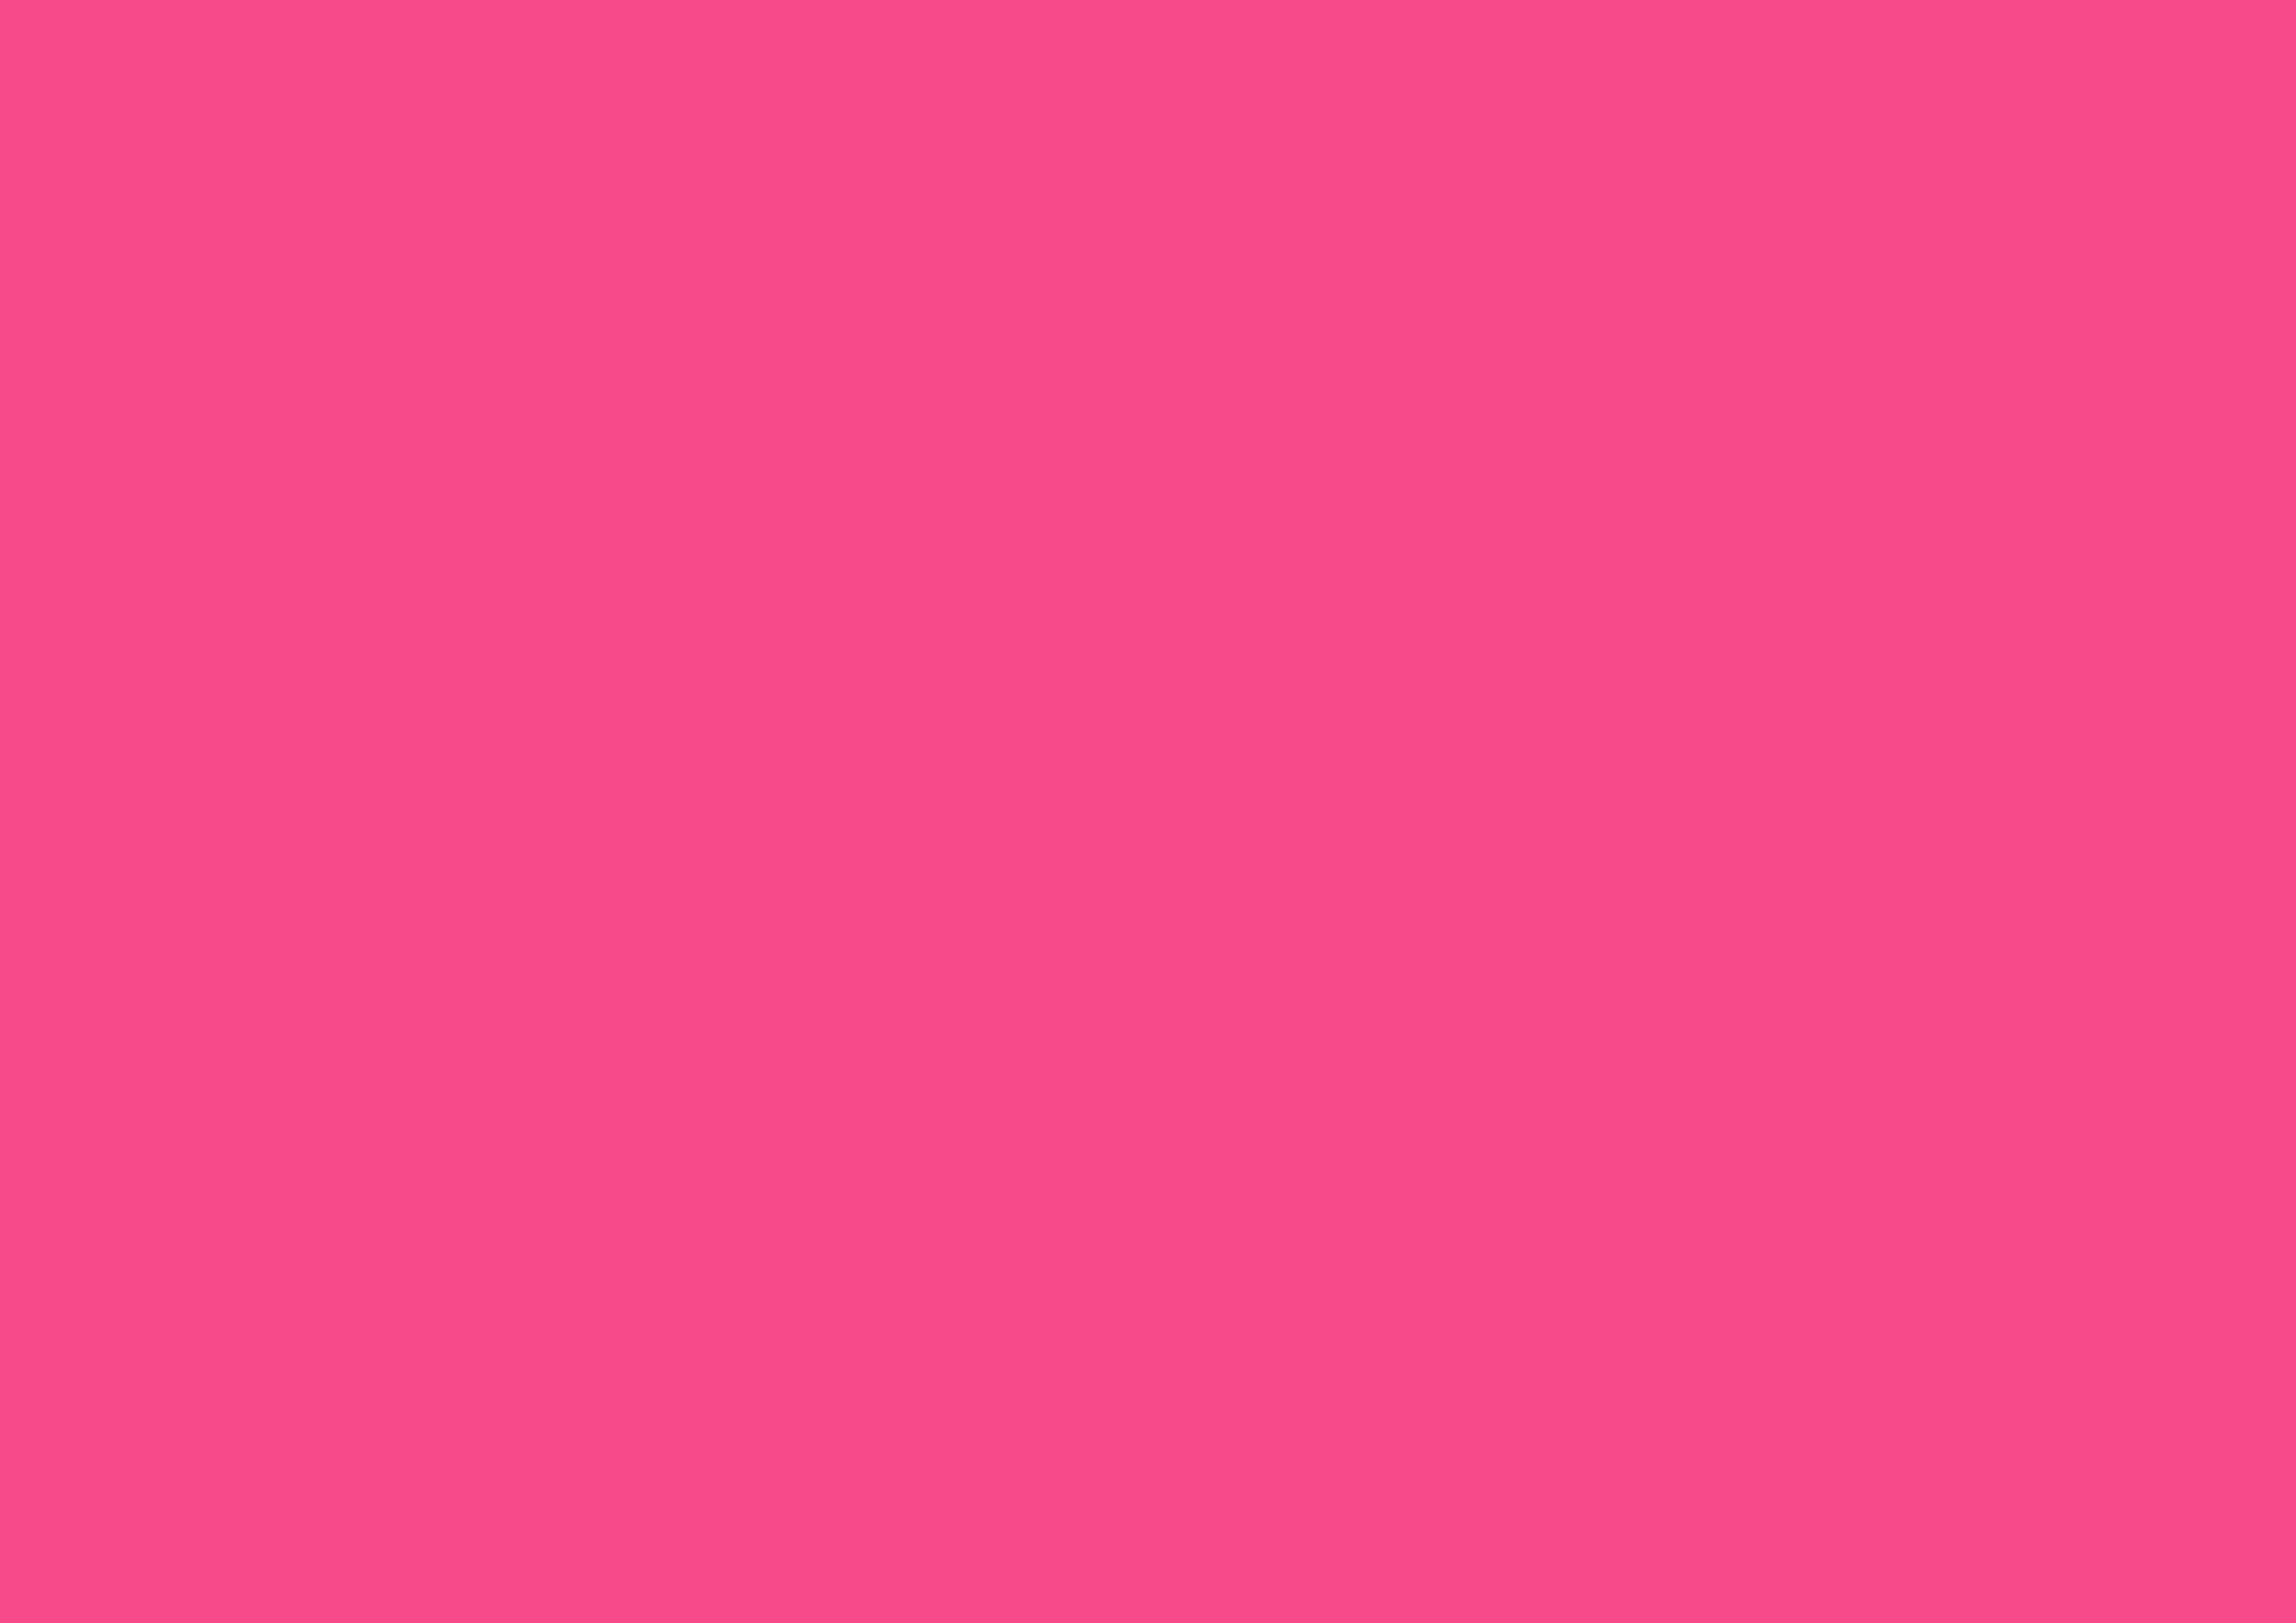 3508x2480 French Rose Solid Color Background